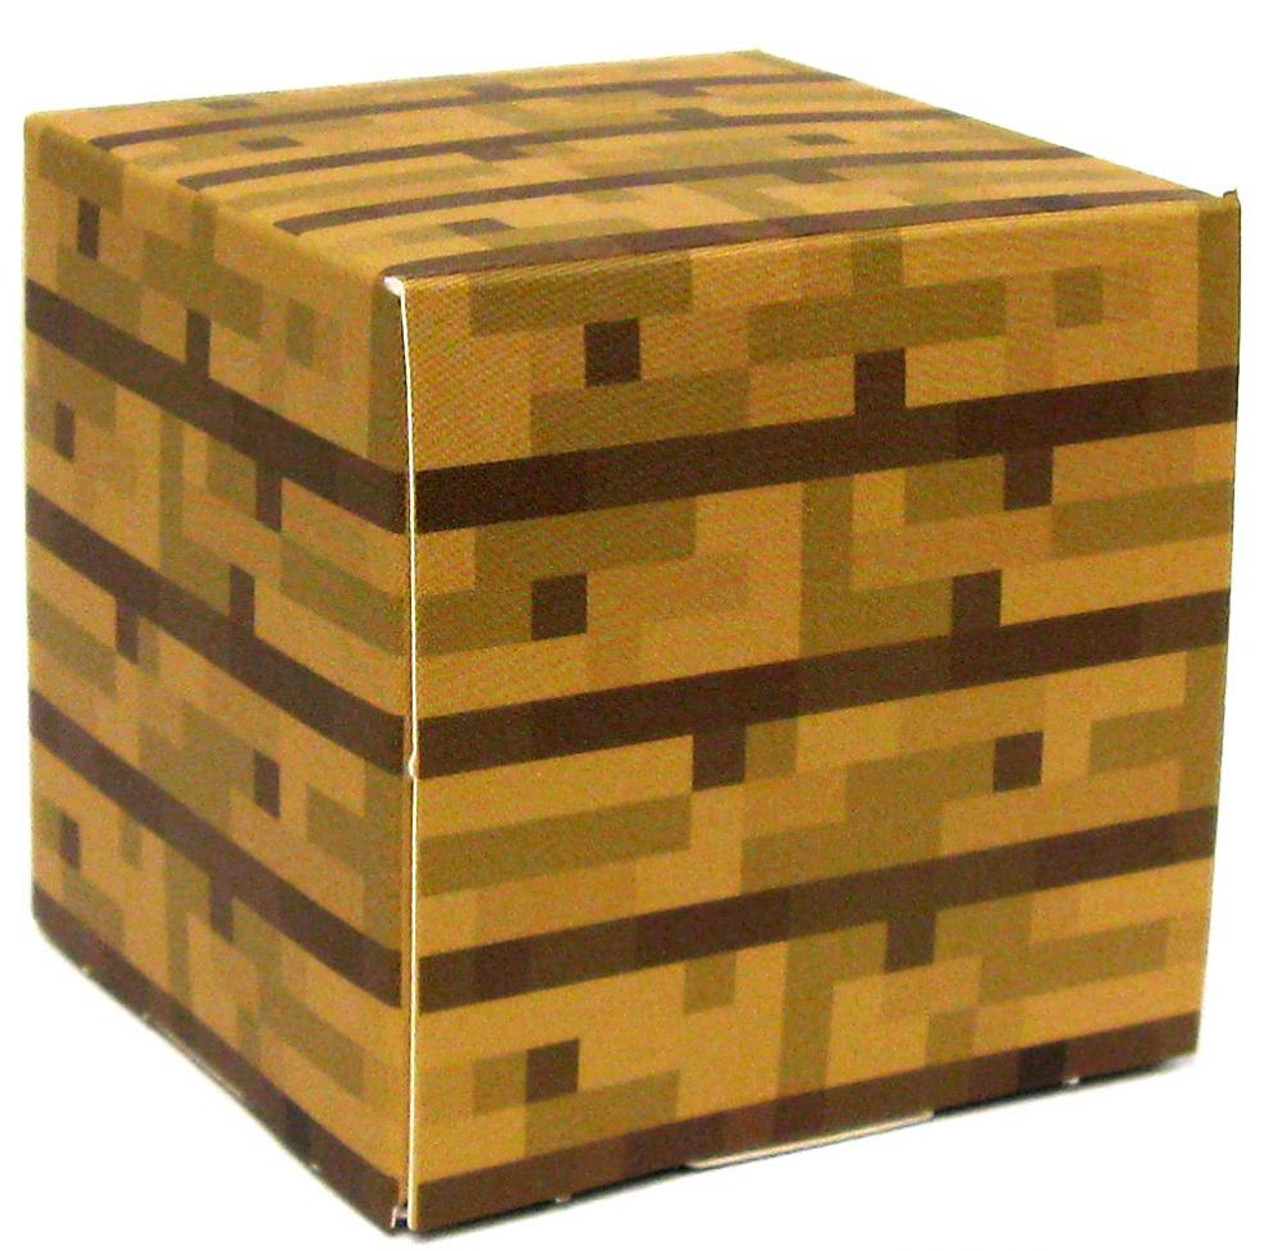 Minecraft wooden plank block papercraft single piece for Plank blocks